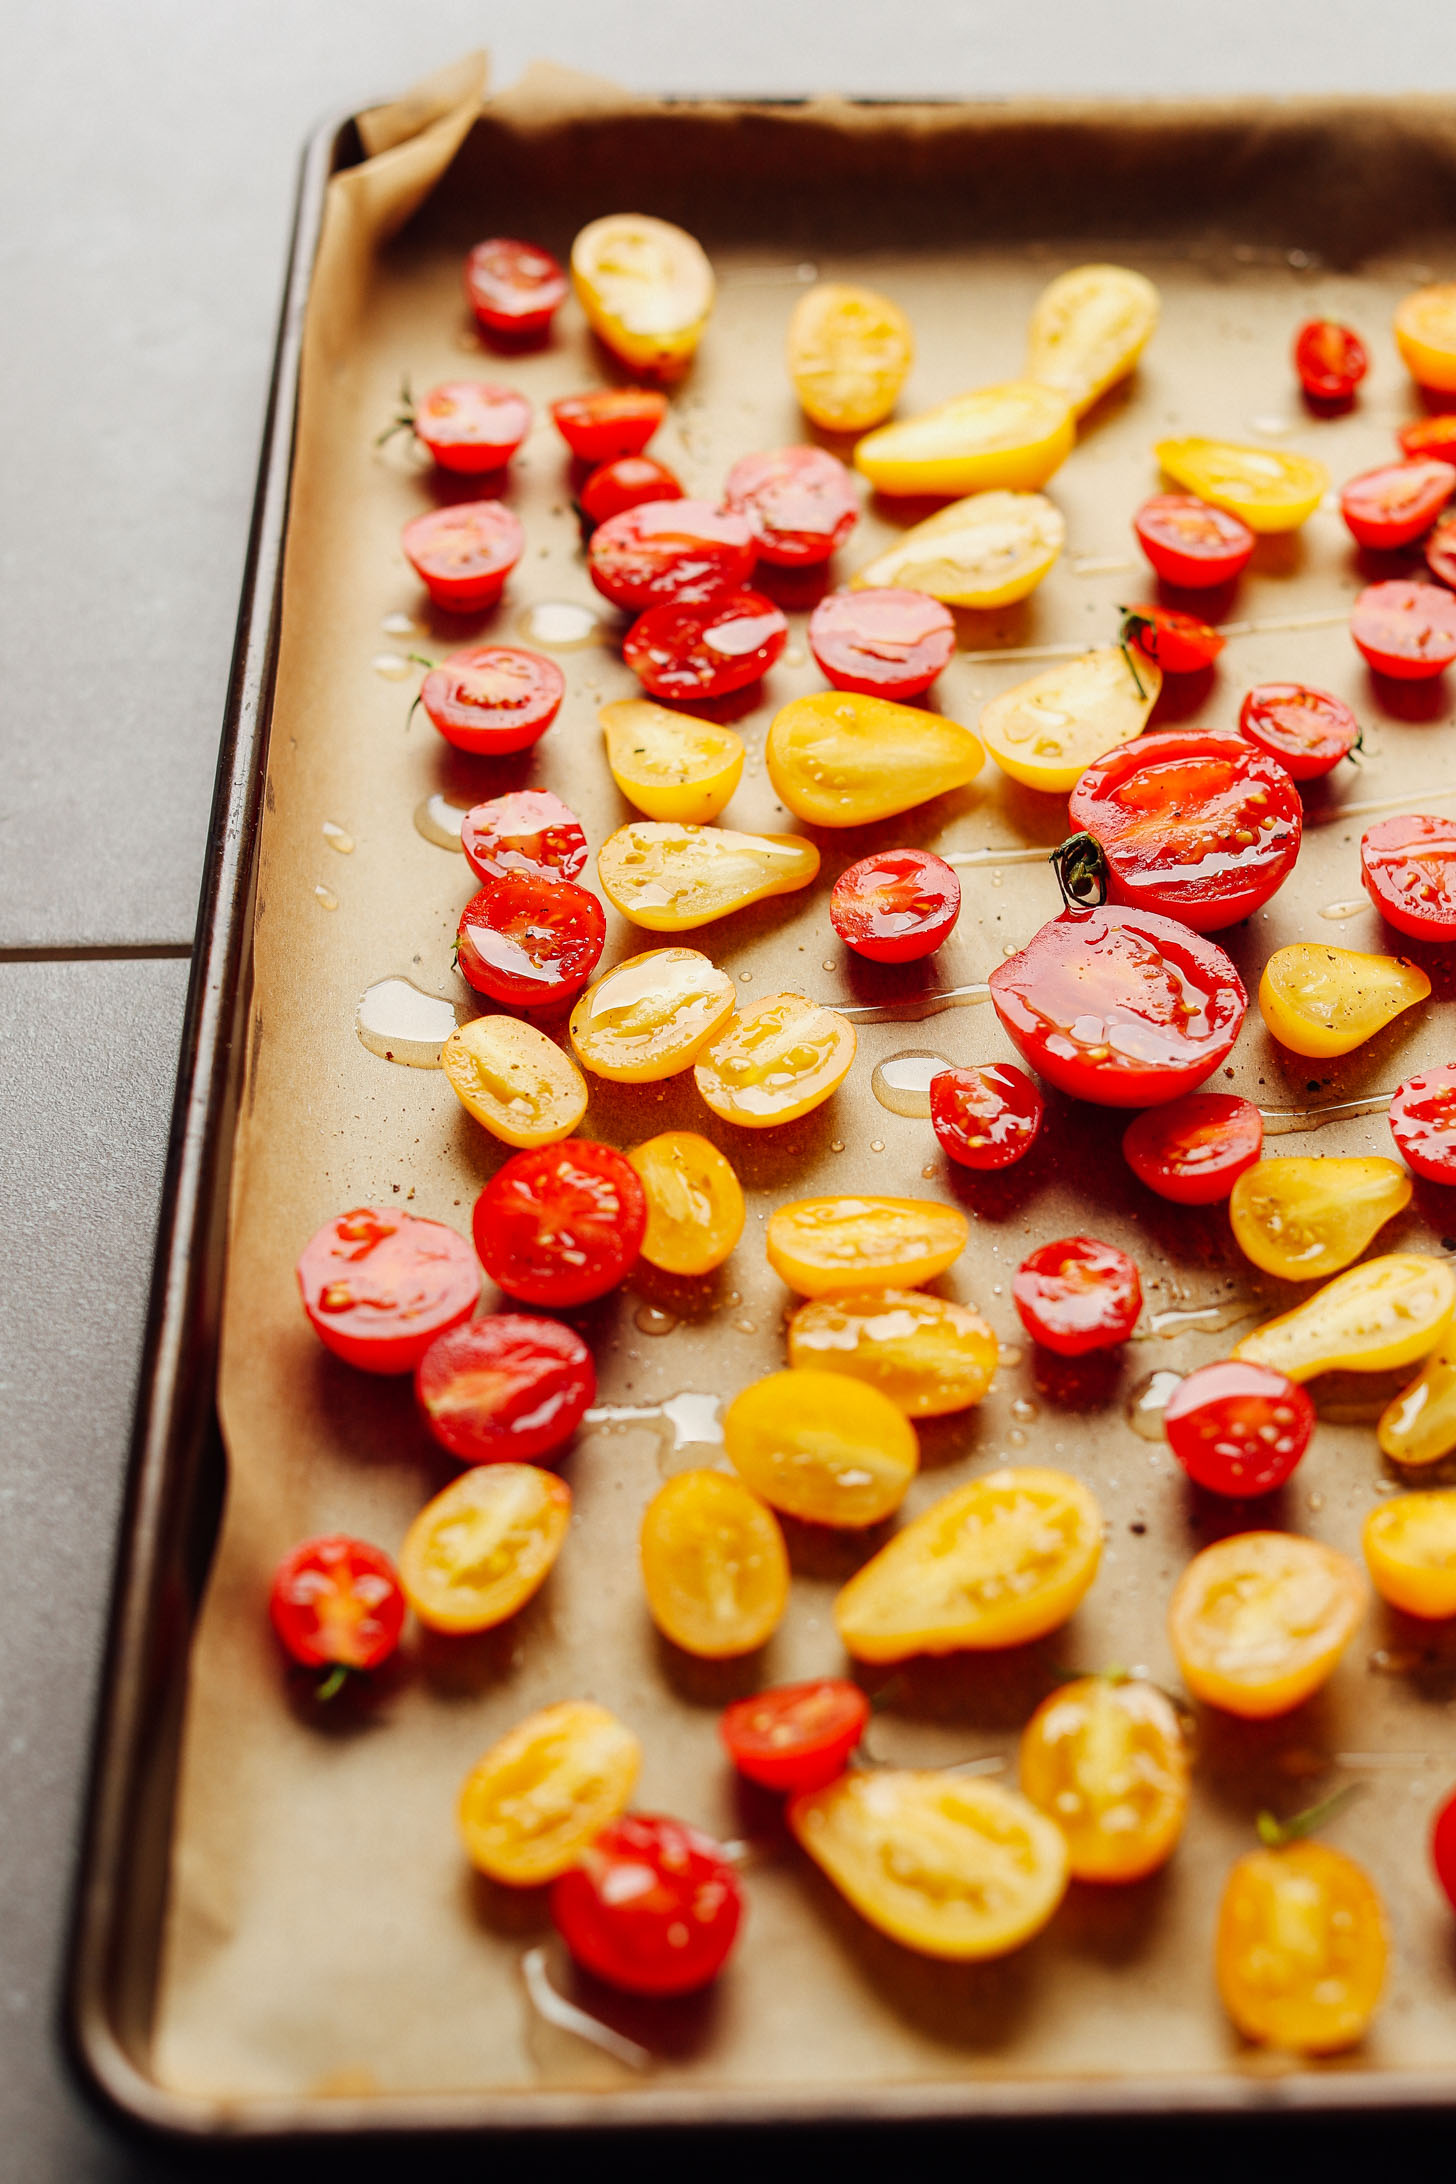 Baking sheet filled with red and yellow Slow Roasted Cherry Tomatoes for adding to salads and more